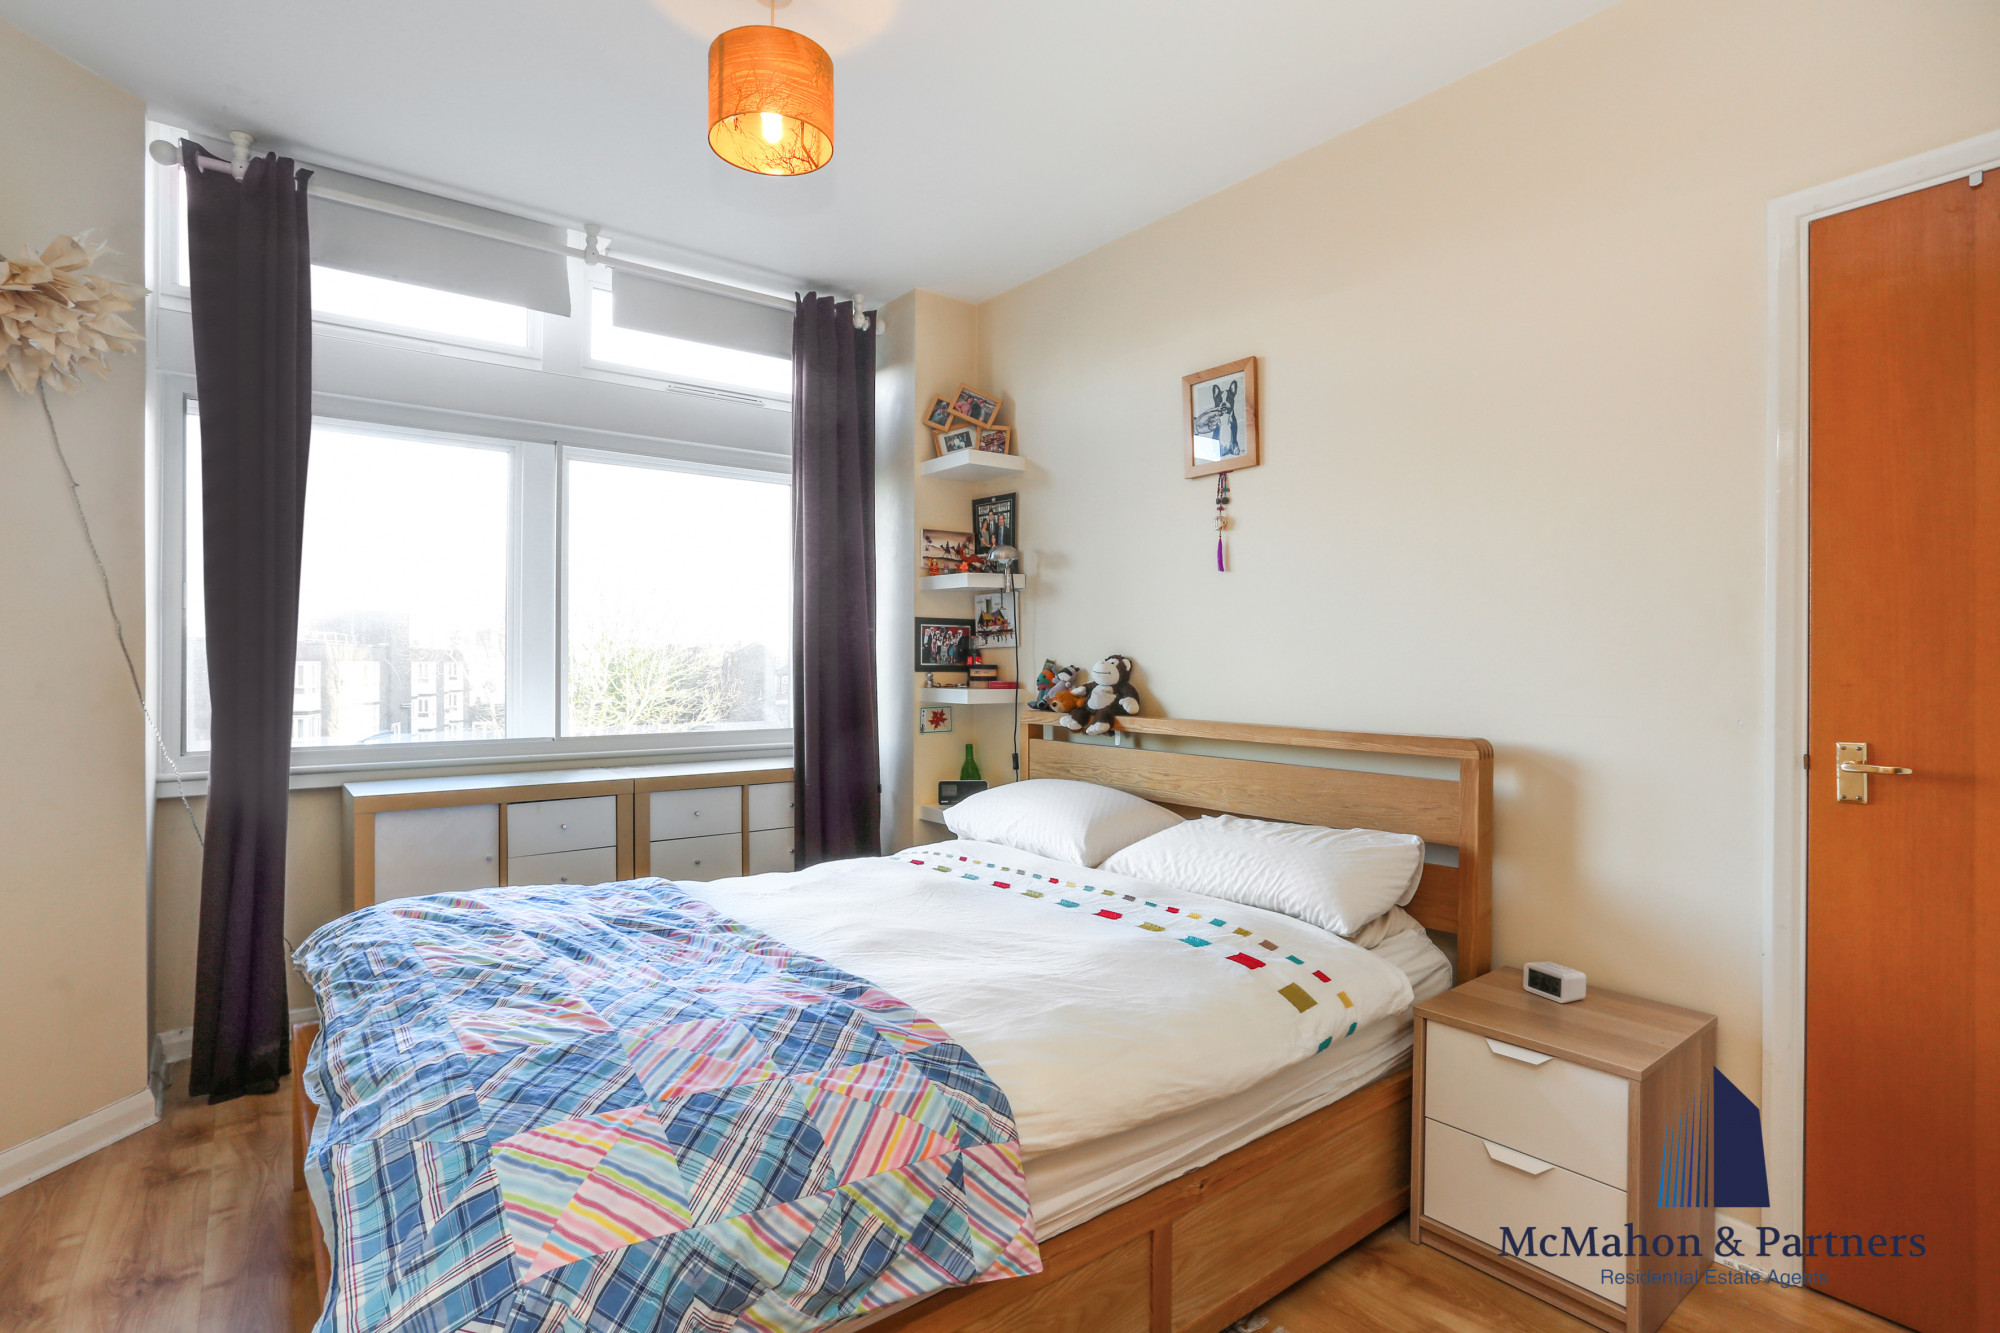 2 Bed Apartment Metro Central Heights London Se1 Mcmahon Partners Ltd